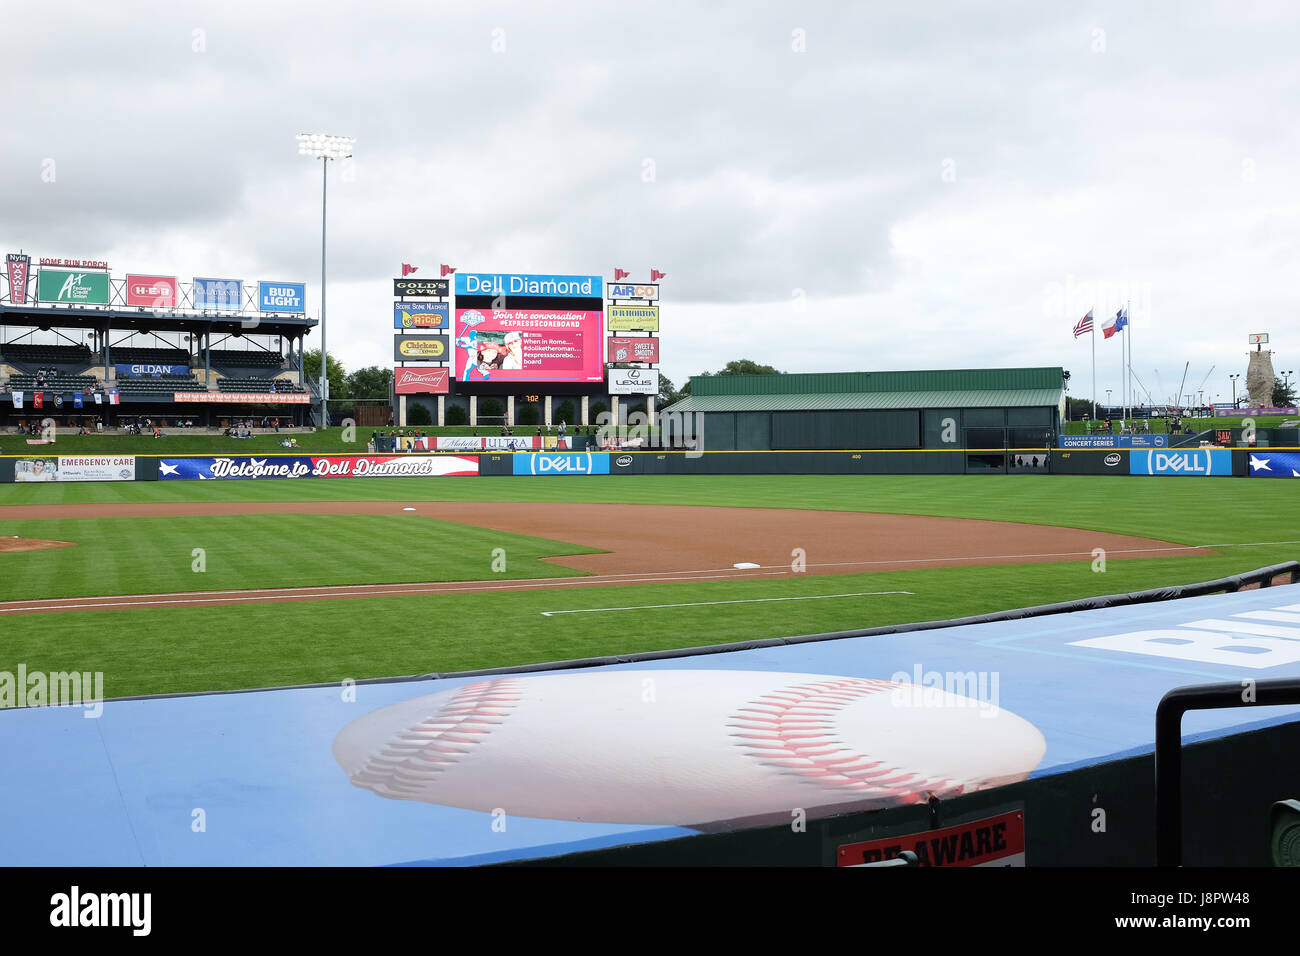 ROUND ROCK, TEXAS - MAY 22, 21017: Dell Diamond Stadium. The field is home to the minor league Round Rock Express - Stock Image